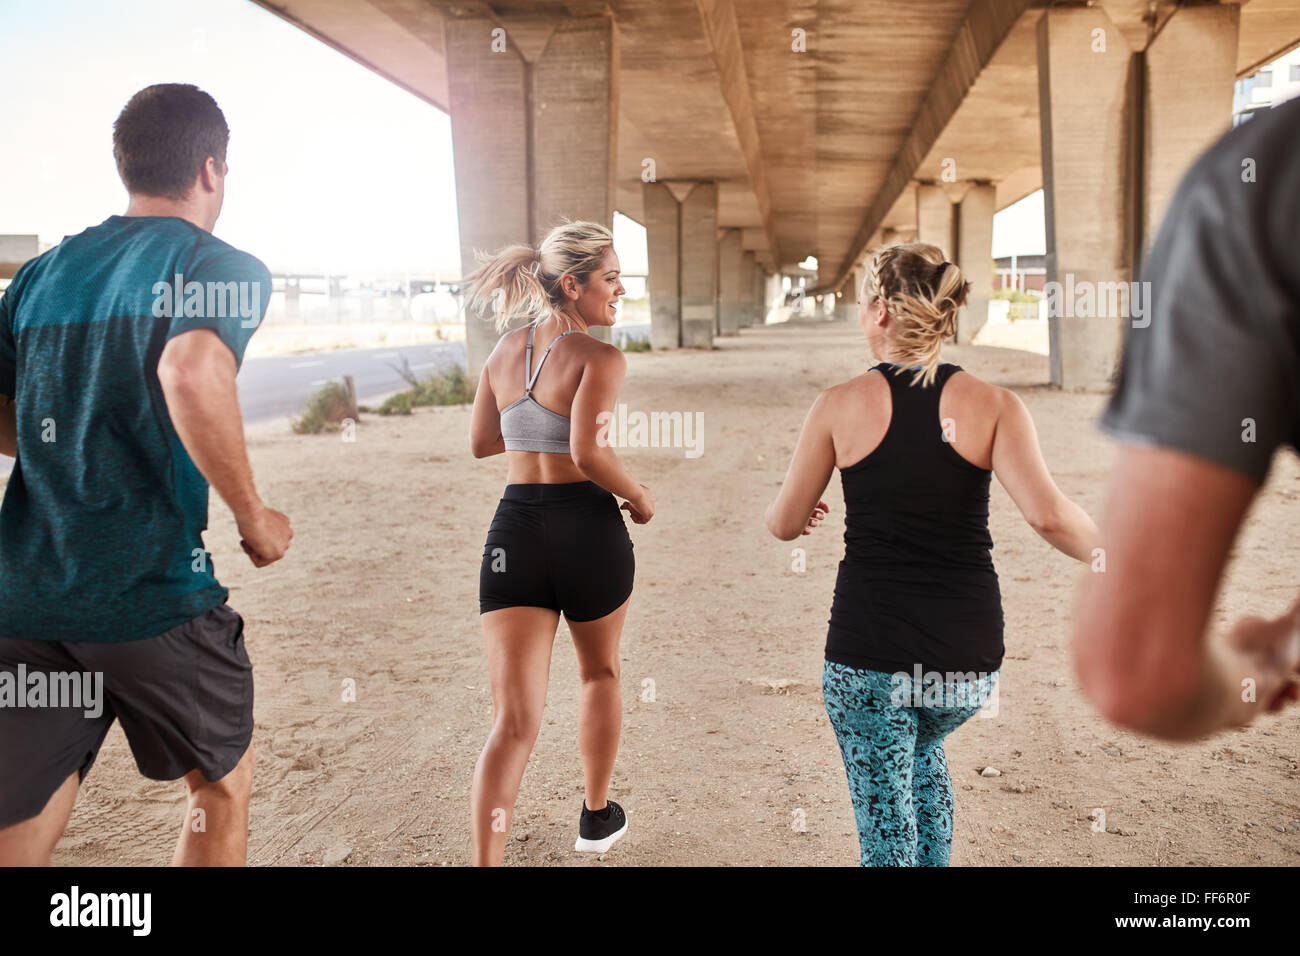 Group of young people working out in the city. Young men and women running under a bridge. - Stock Image